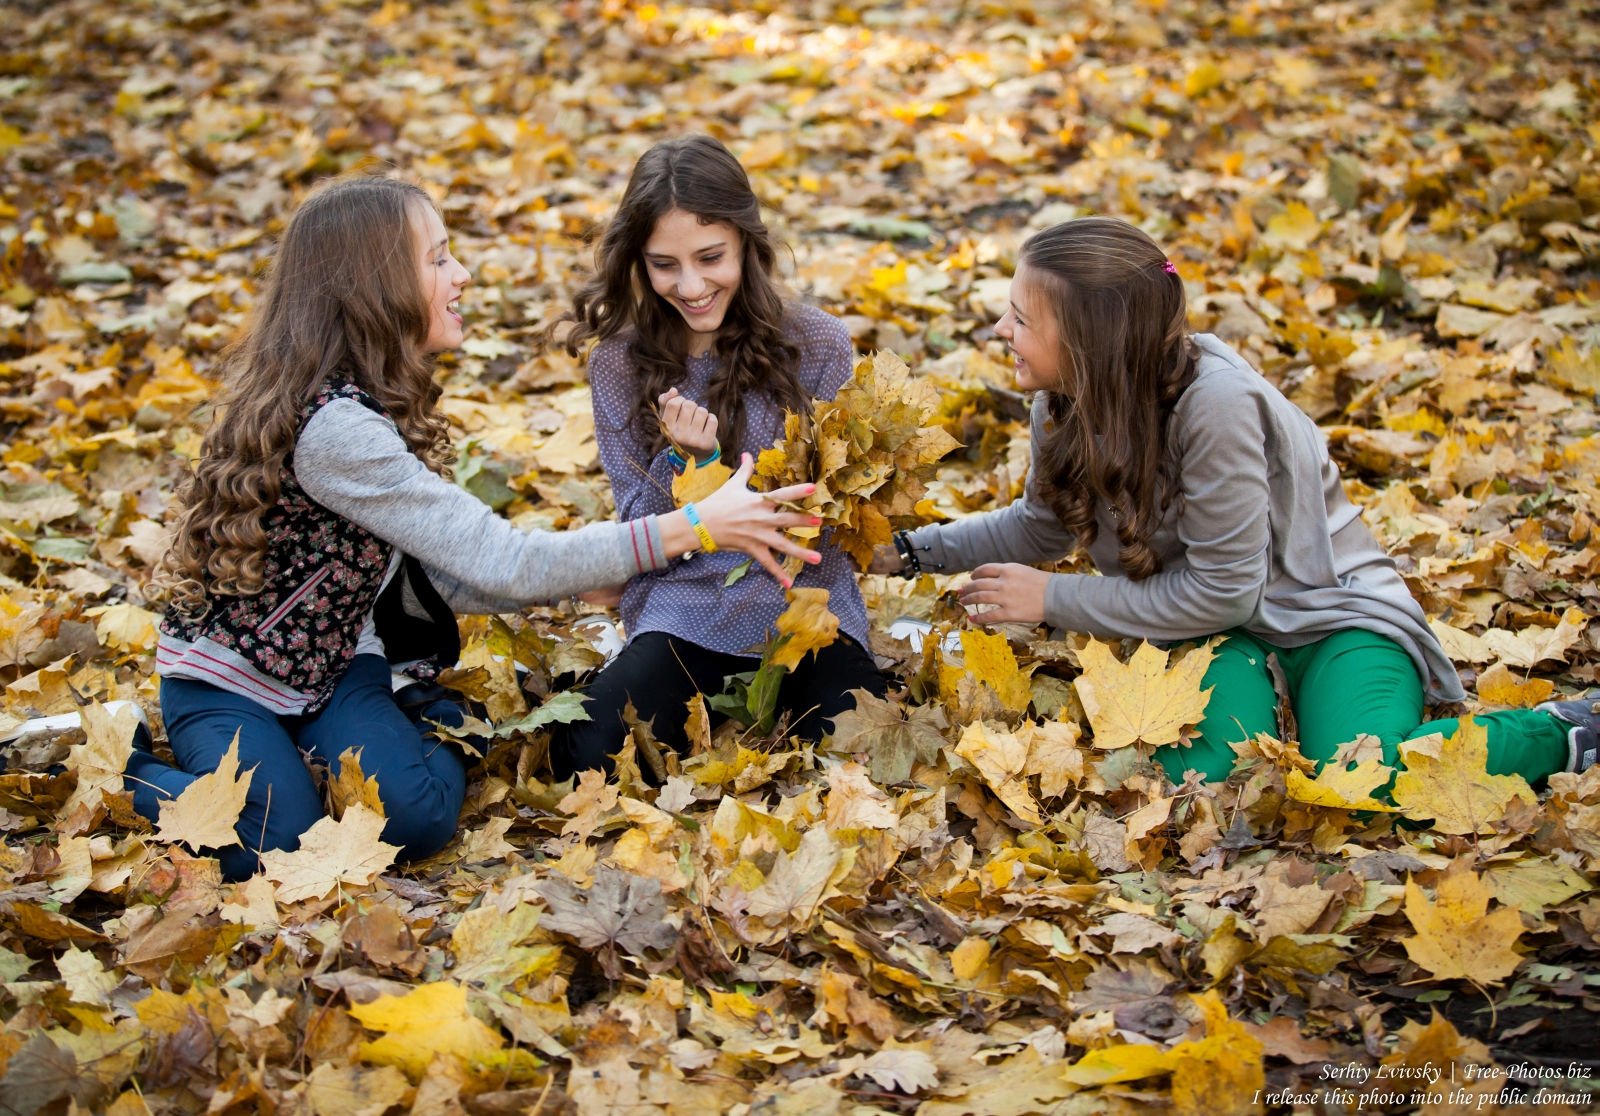 Photo of three teen girls photographed by Serhiy Lvivsky in October 2015